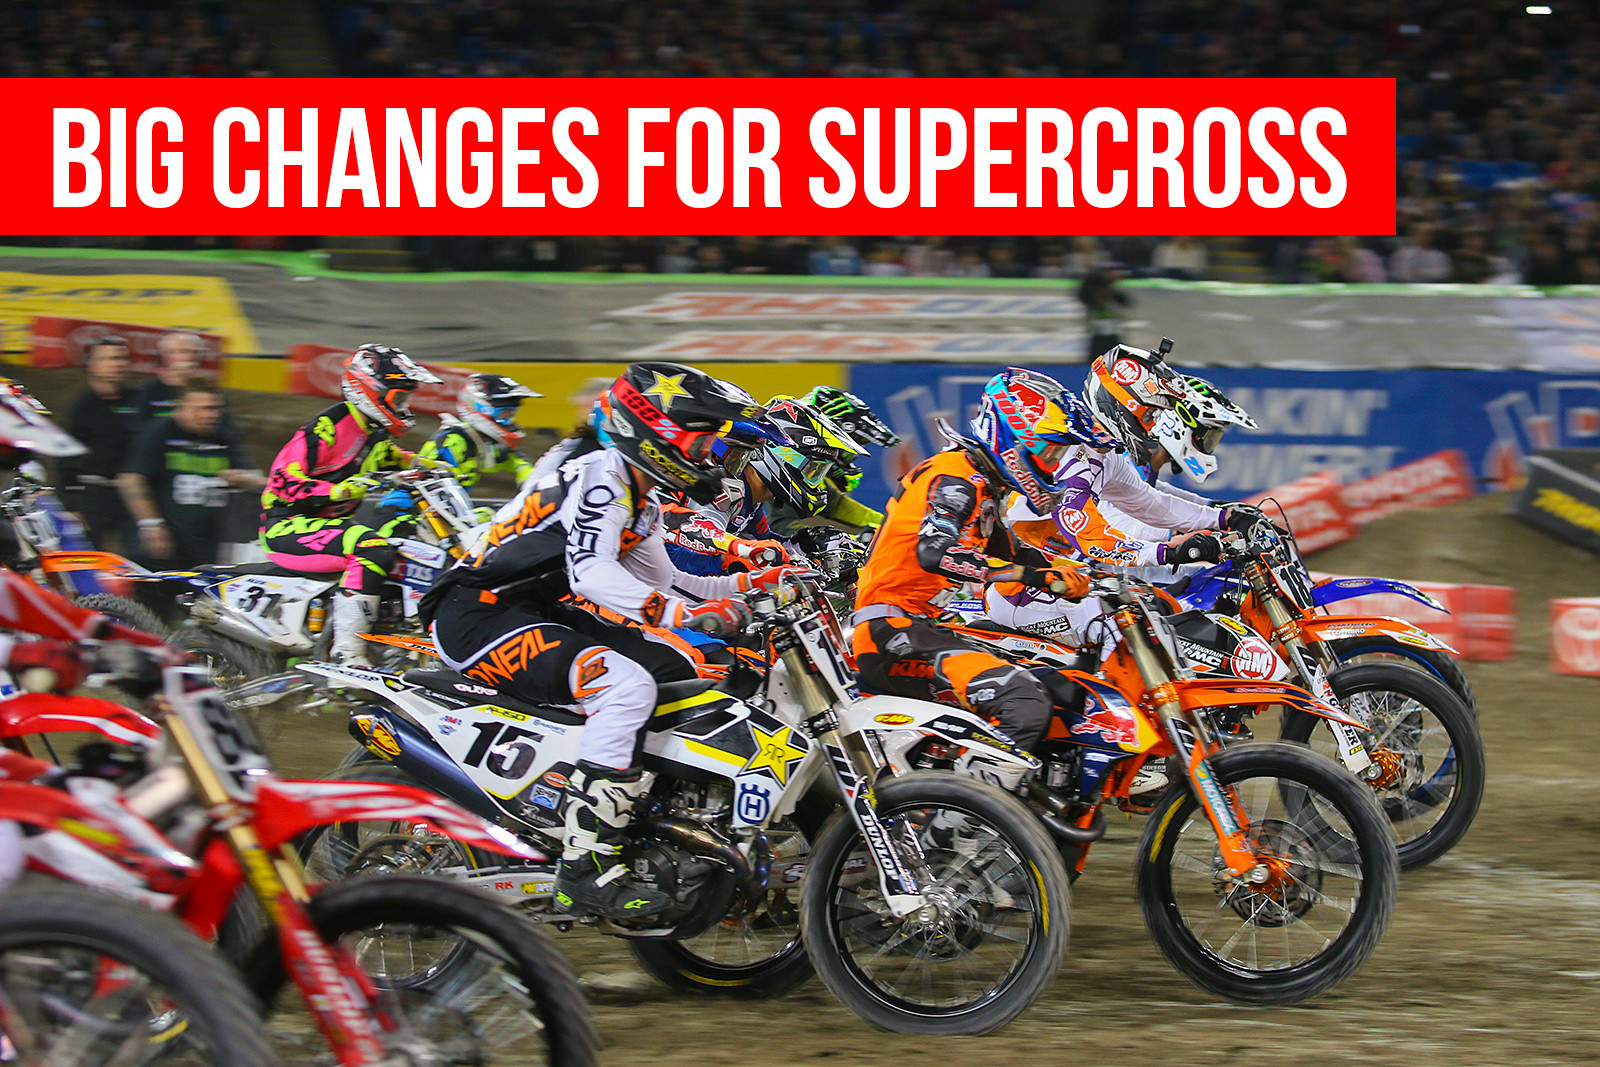 Big Changes for Supercross